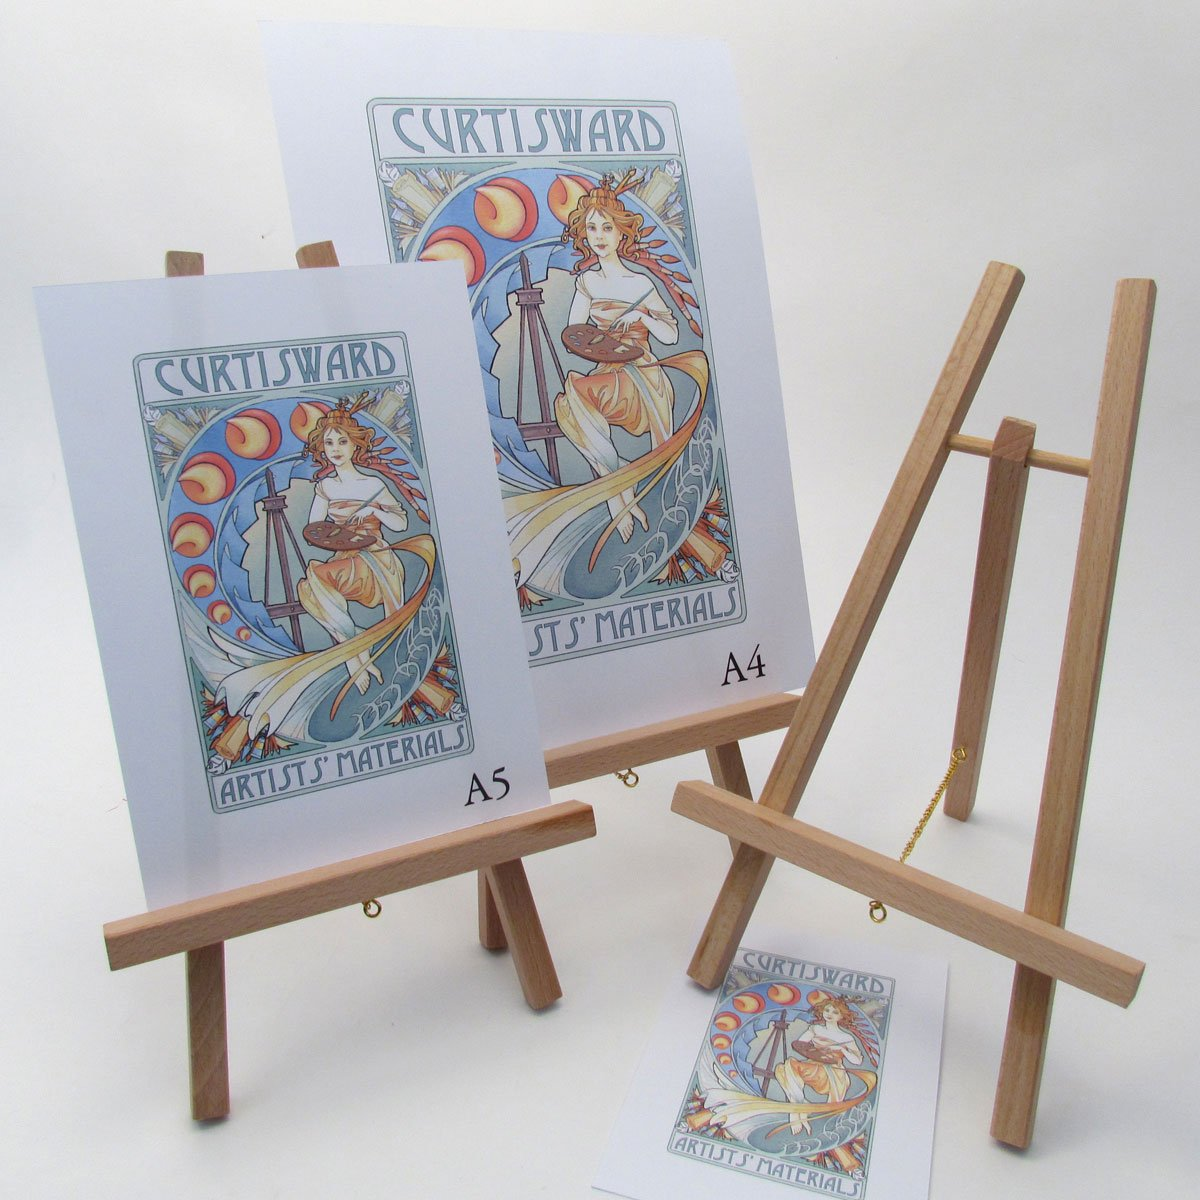 Curtisward 3 Pack of Small Wooden Table Easels. Display Frames, Menu, Art Easel. 28cm High